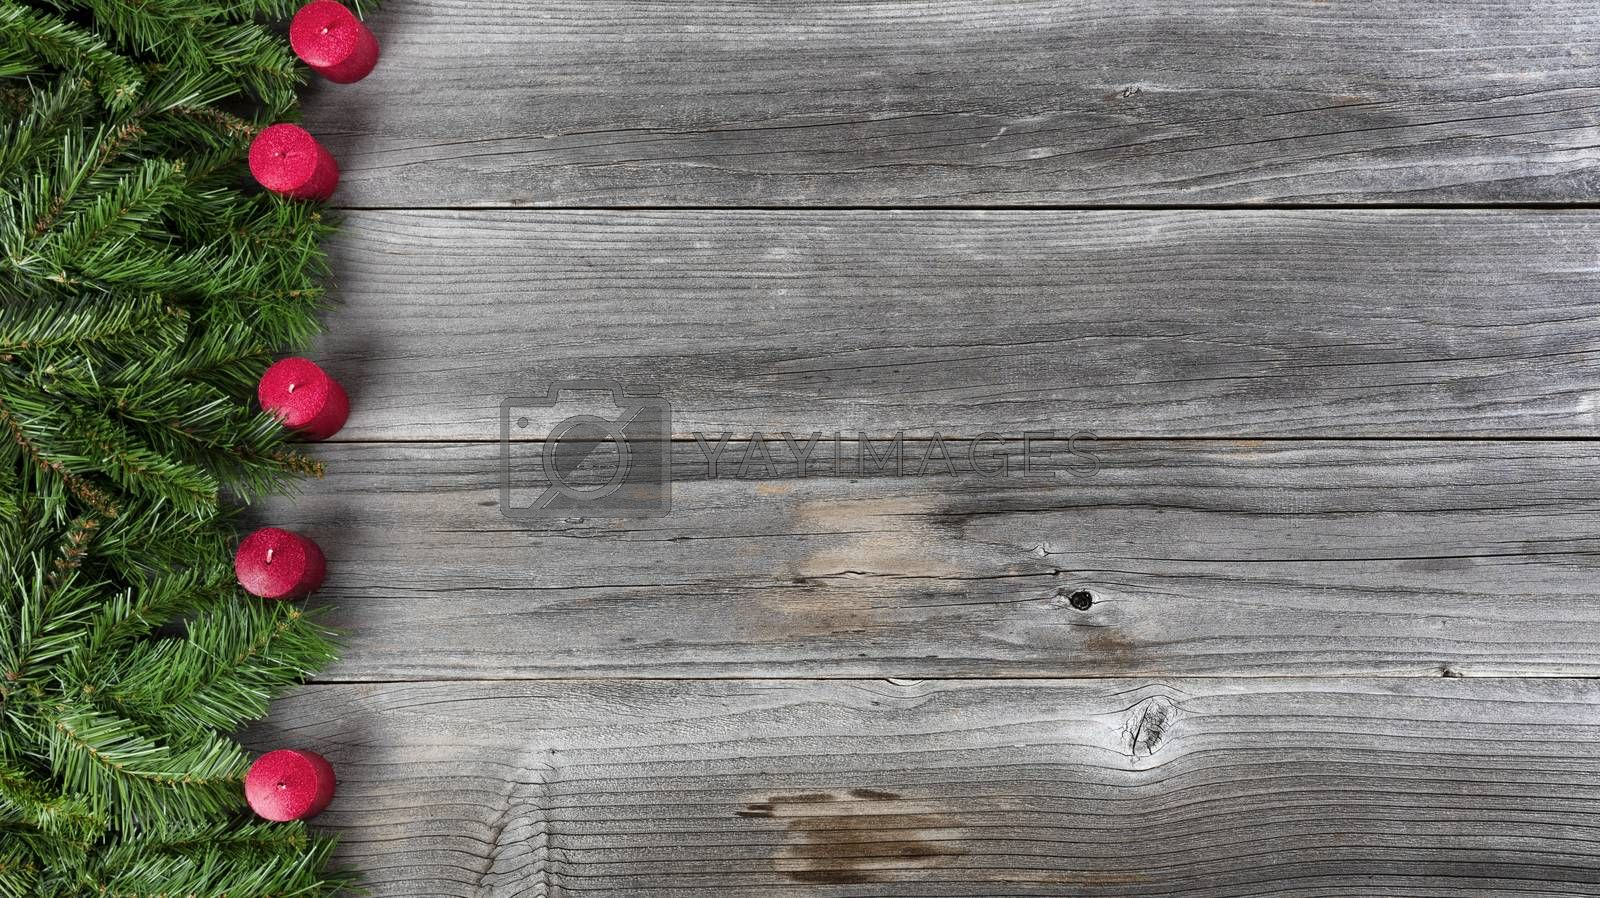 Merry Christmas and Happy New Year concept consisting of fir branches and red candles on left side of rustic wooden boards